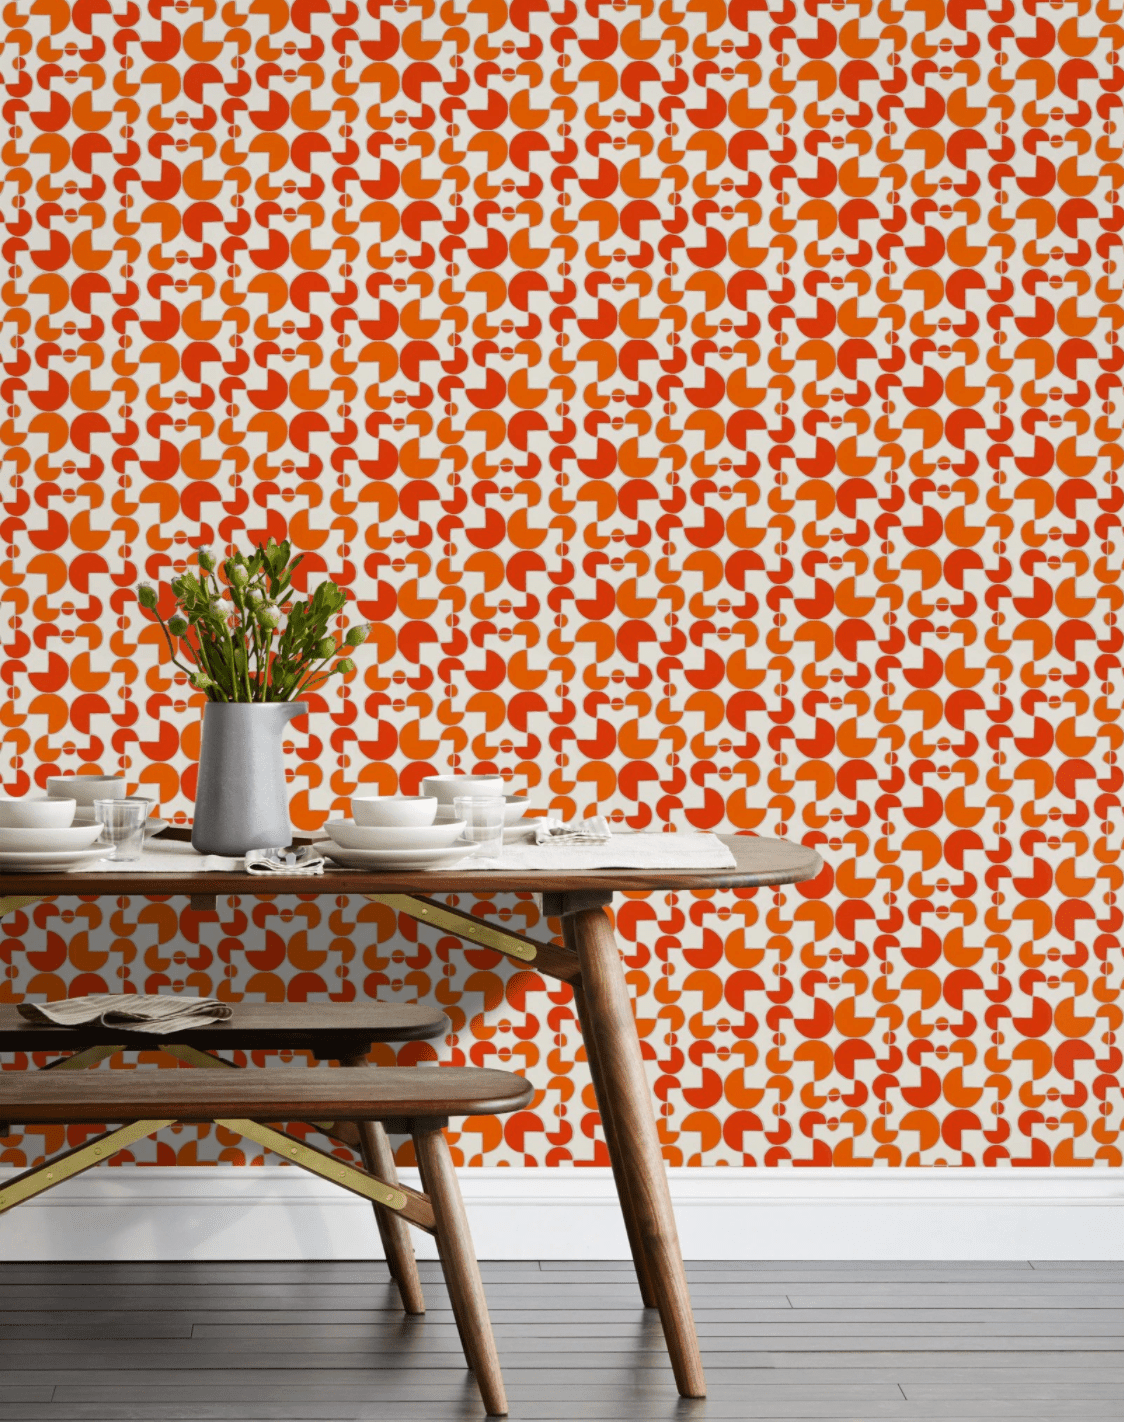 A wall covered in red and orange printed wallpaper